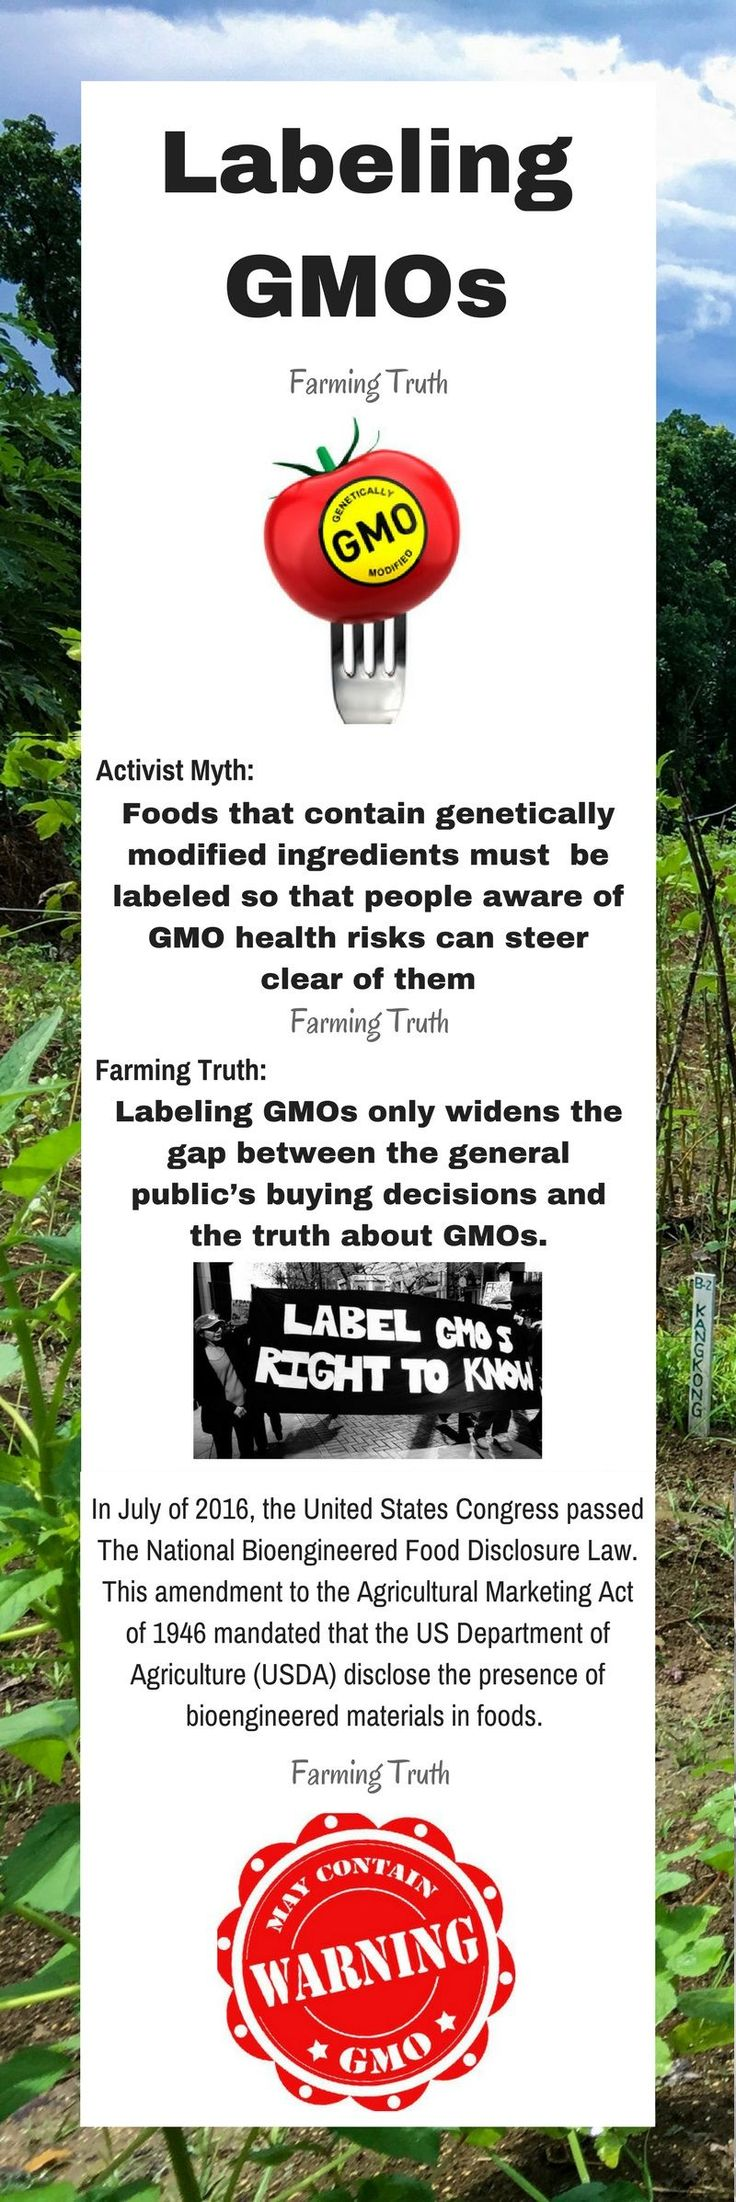 Although consumers have every right to know what's in there food, labeling GMOs is contributing to grocery shopper ignorance.